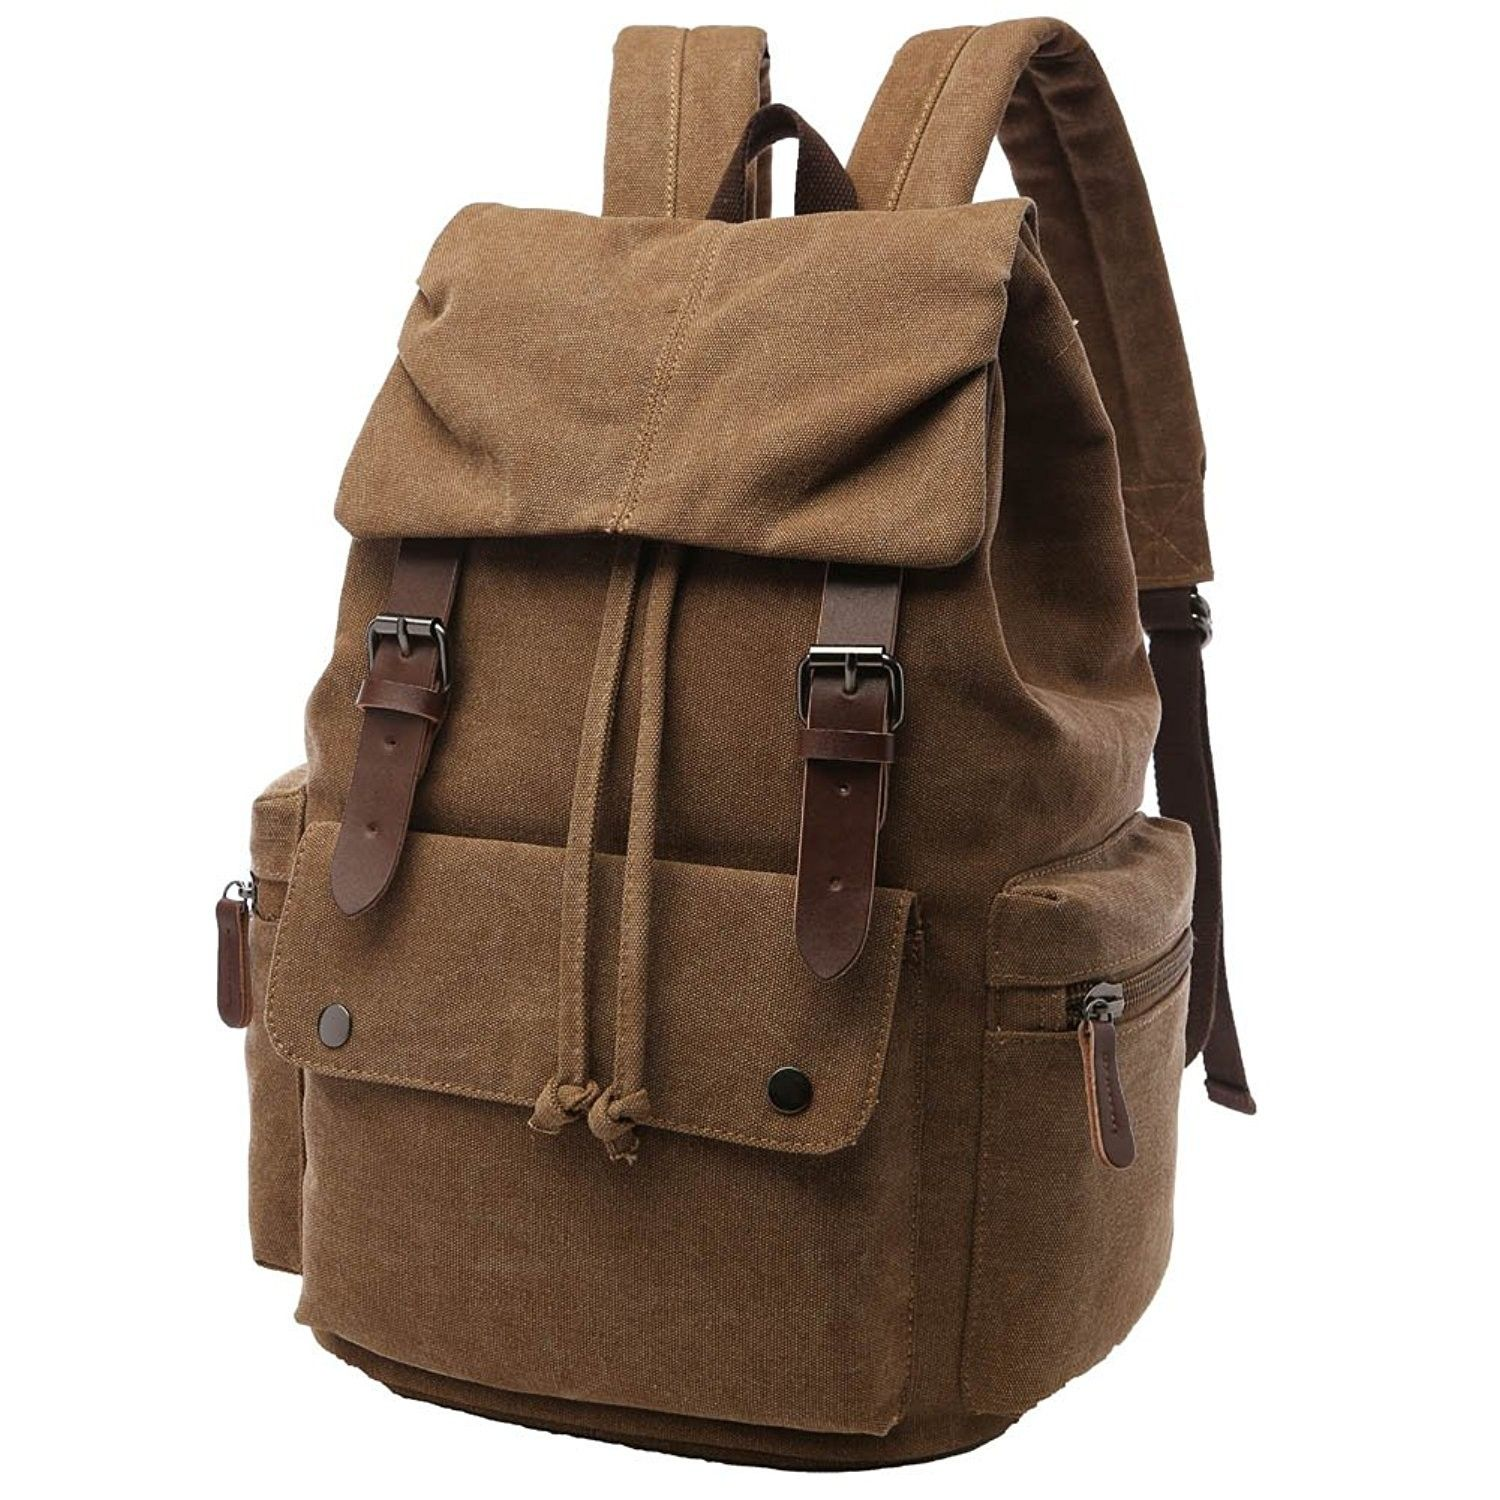 d1c6a5e7c9 Vintage Canvas Backpack for School Casual Rucksack Travel Bag for ...